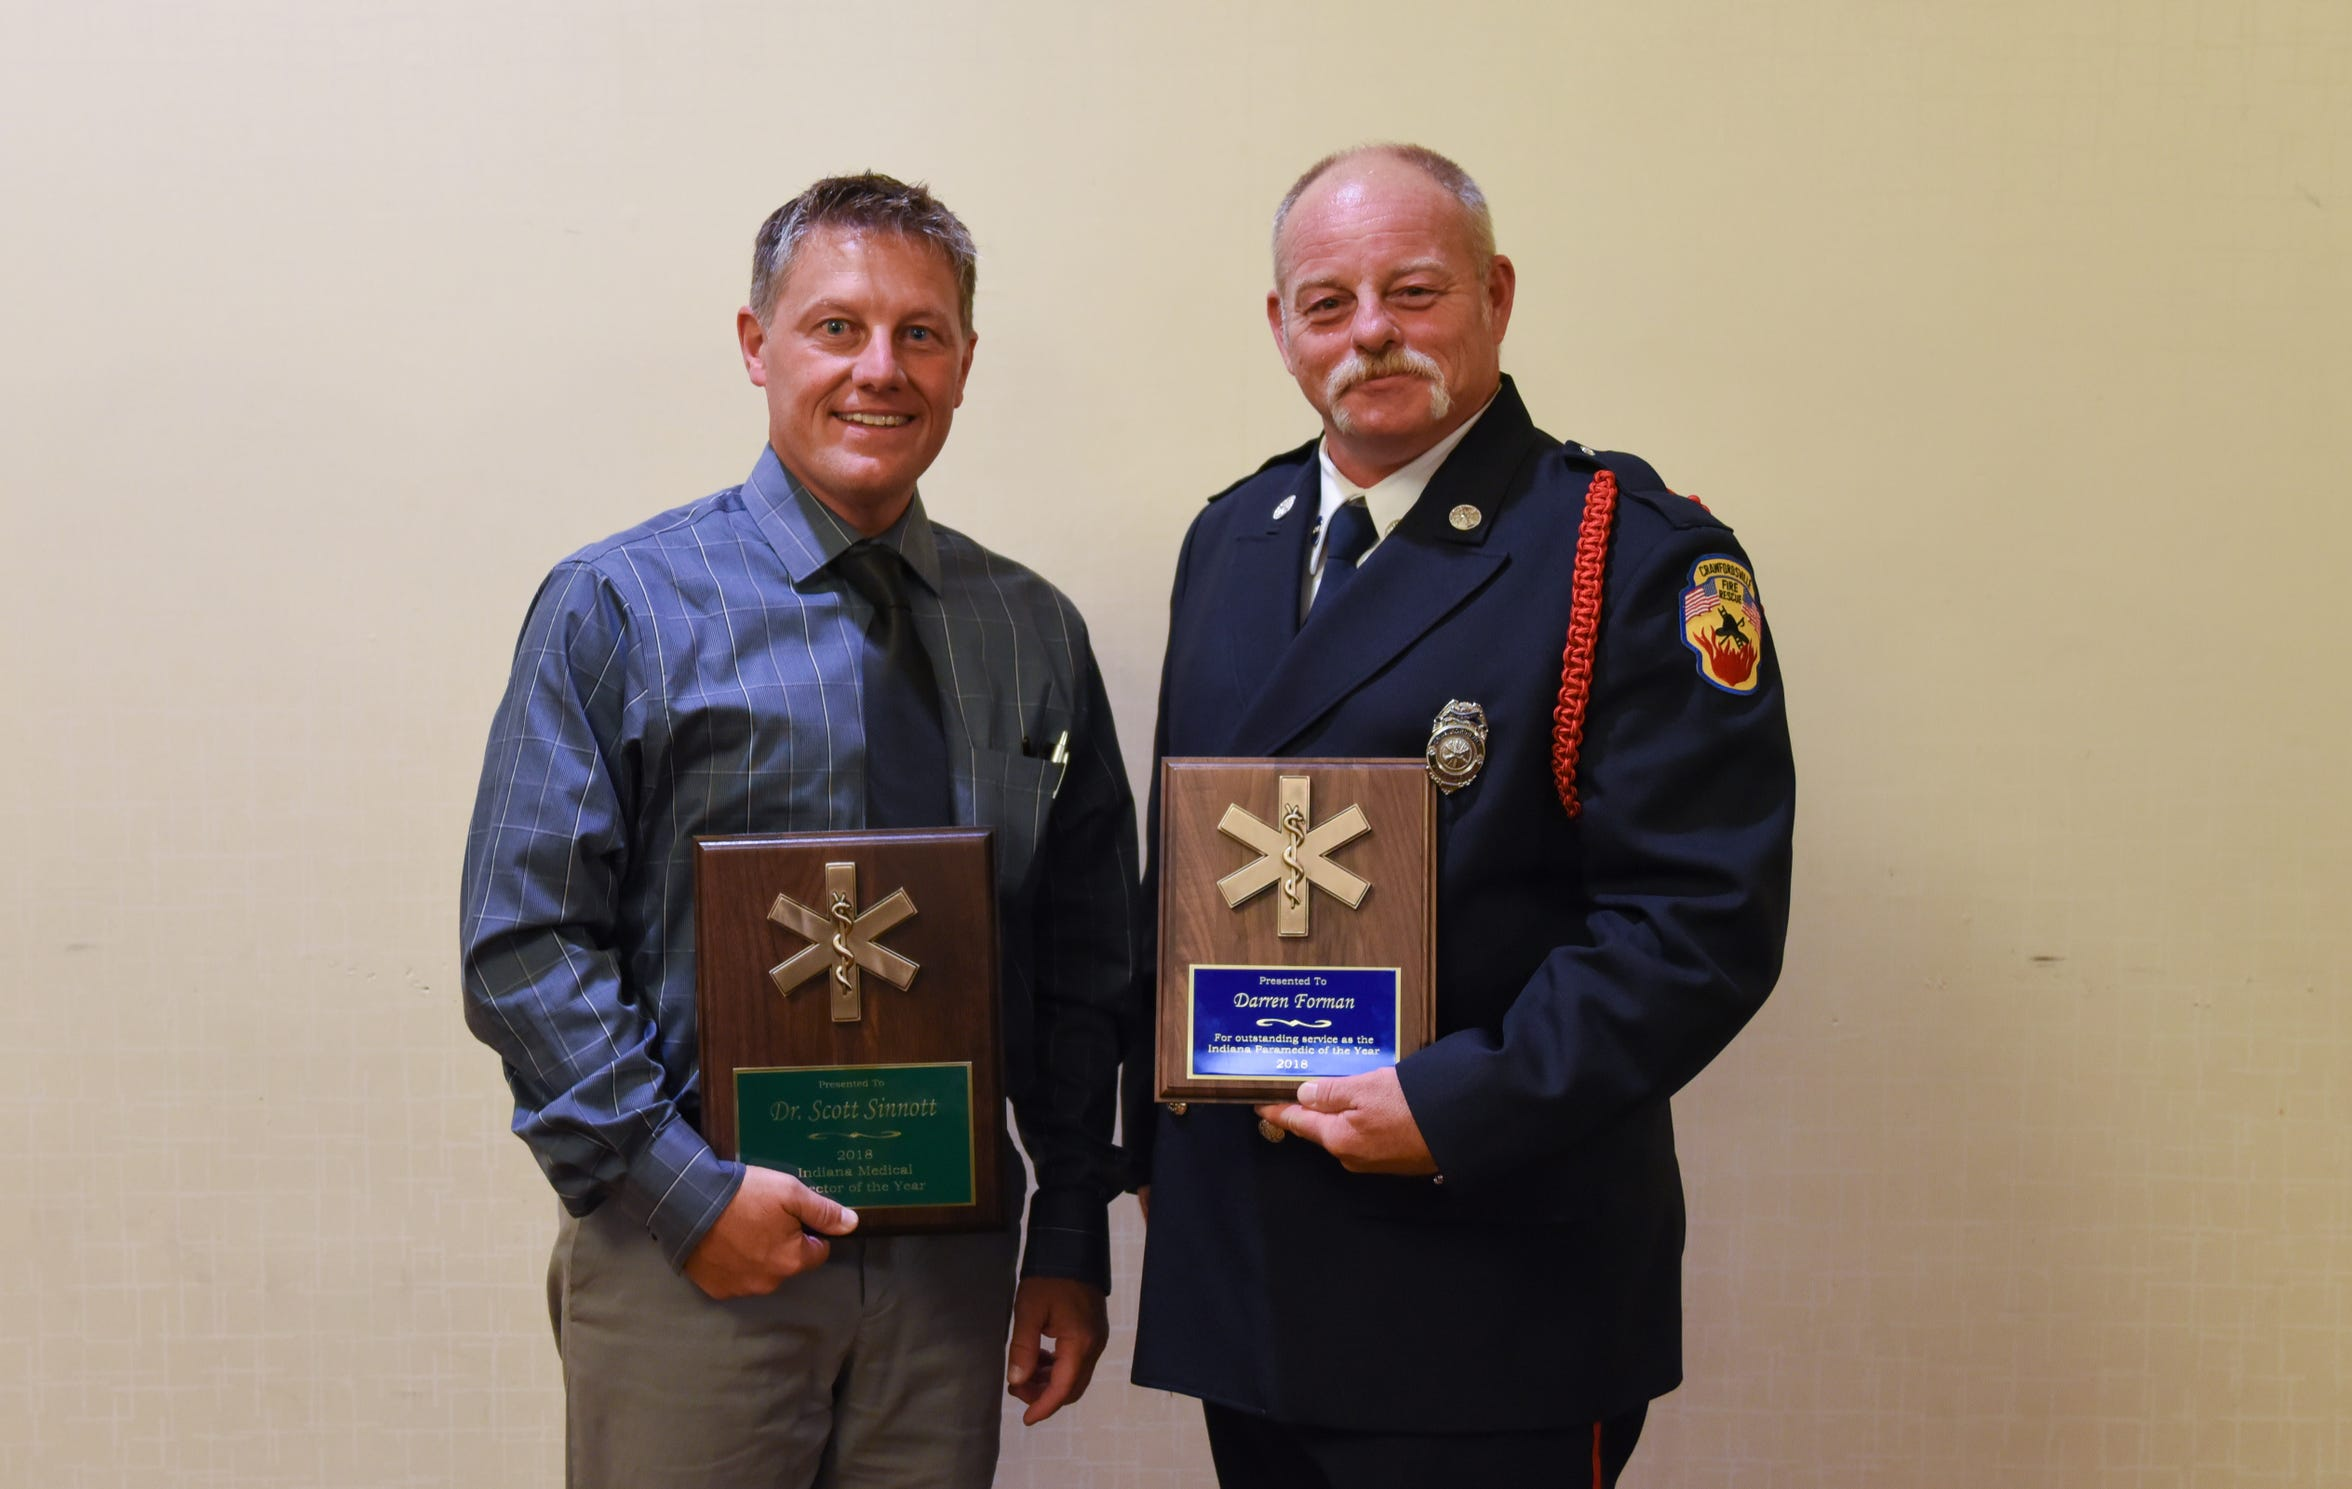 Dr. Scott Sinnott, left, and paramedic Darren Forman, right, were awarded statewide honors for their involvement in Project Swaddle.